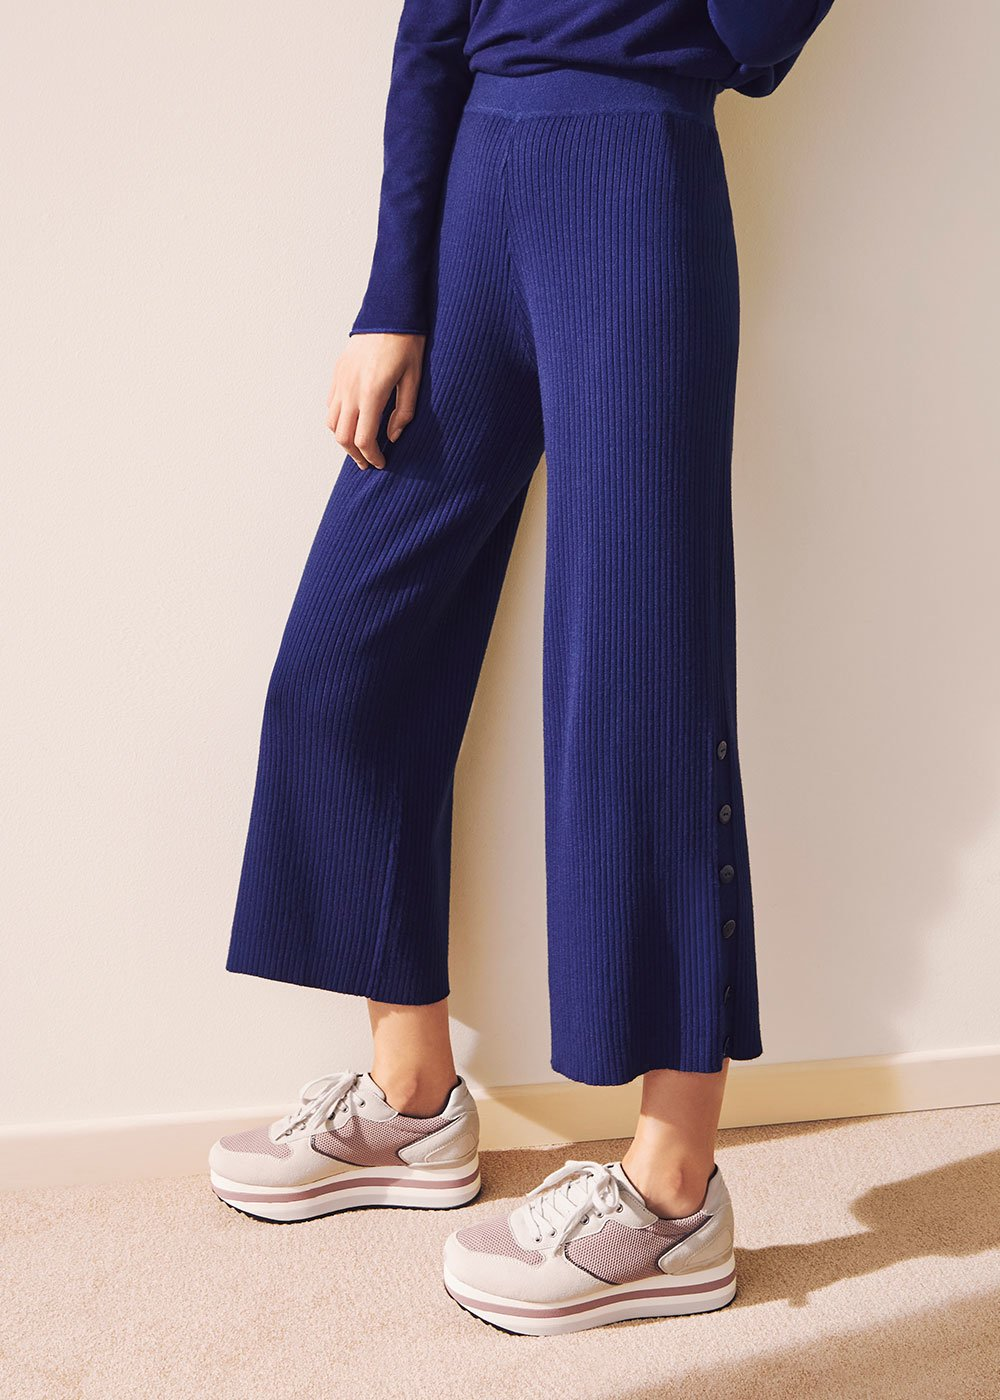 Portos knit trousers - Ultramarine - Woman